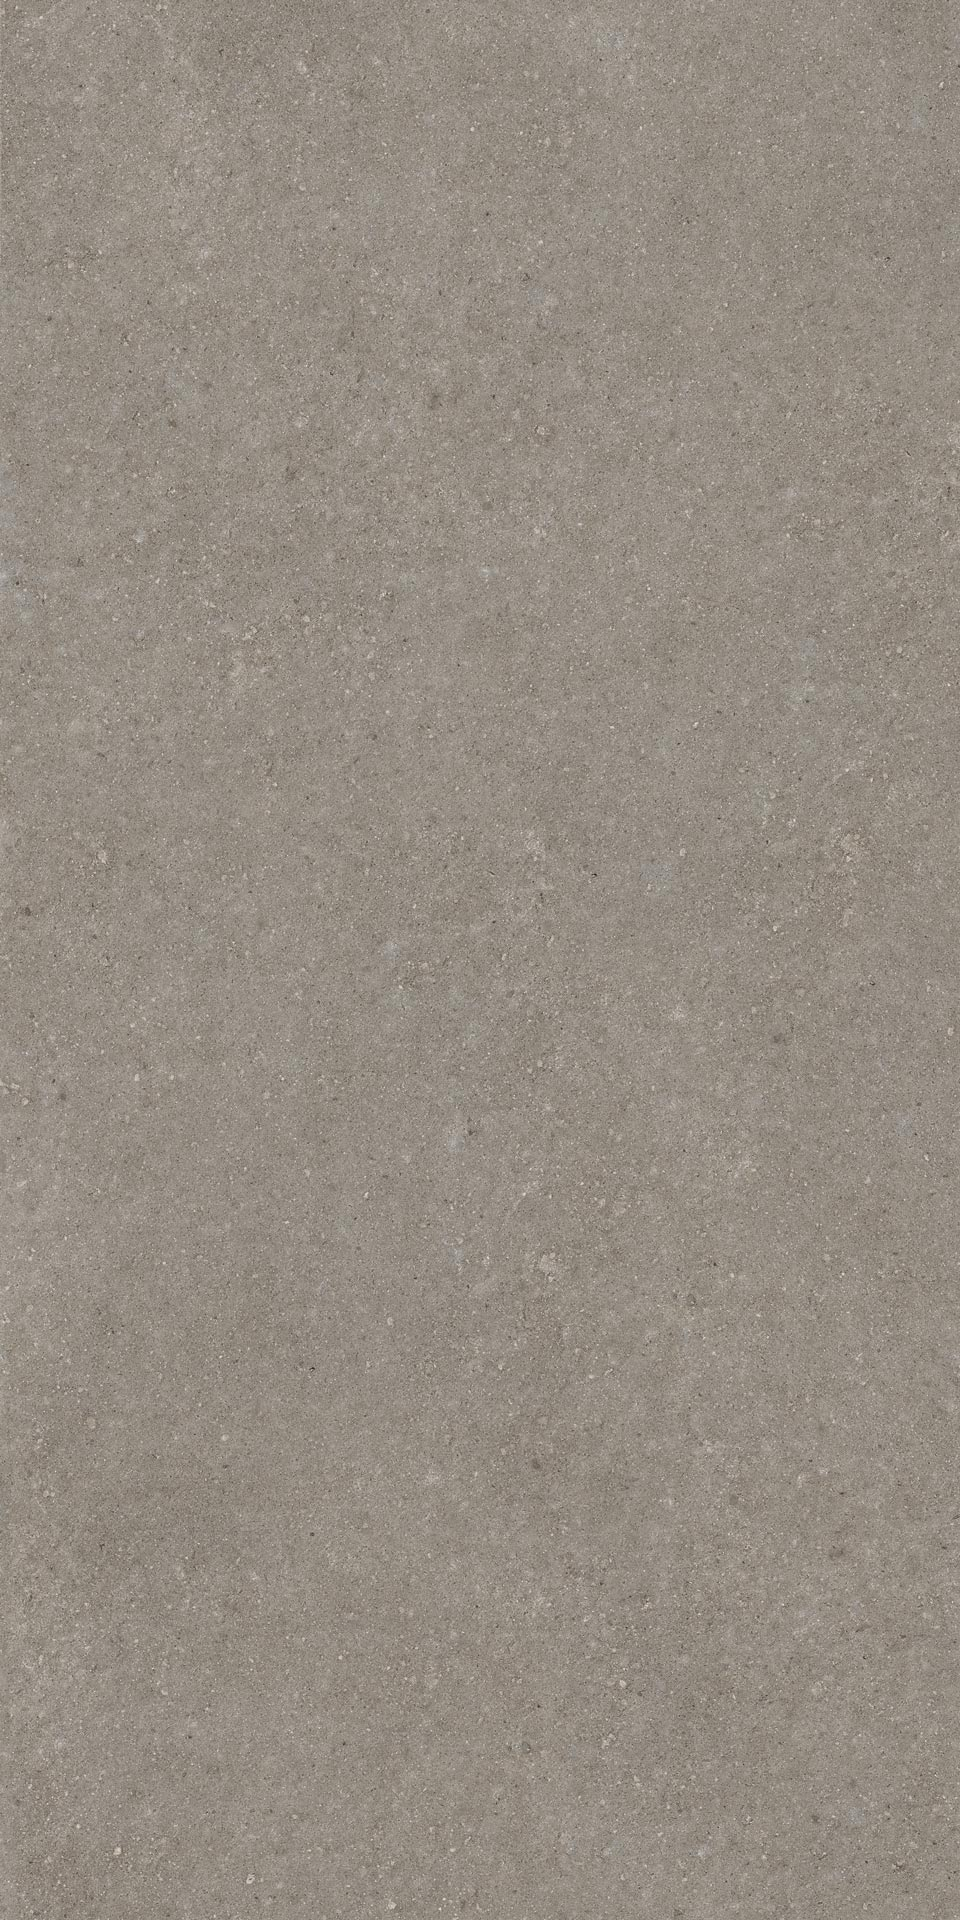 stone-effect-porcelain-stoneware-atlas-plan-kone-grey